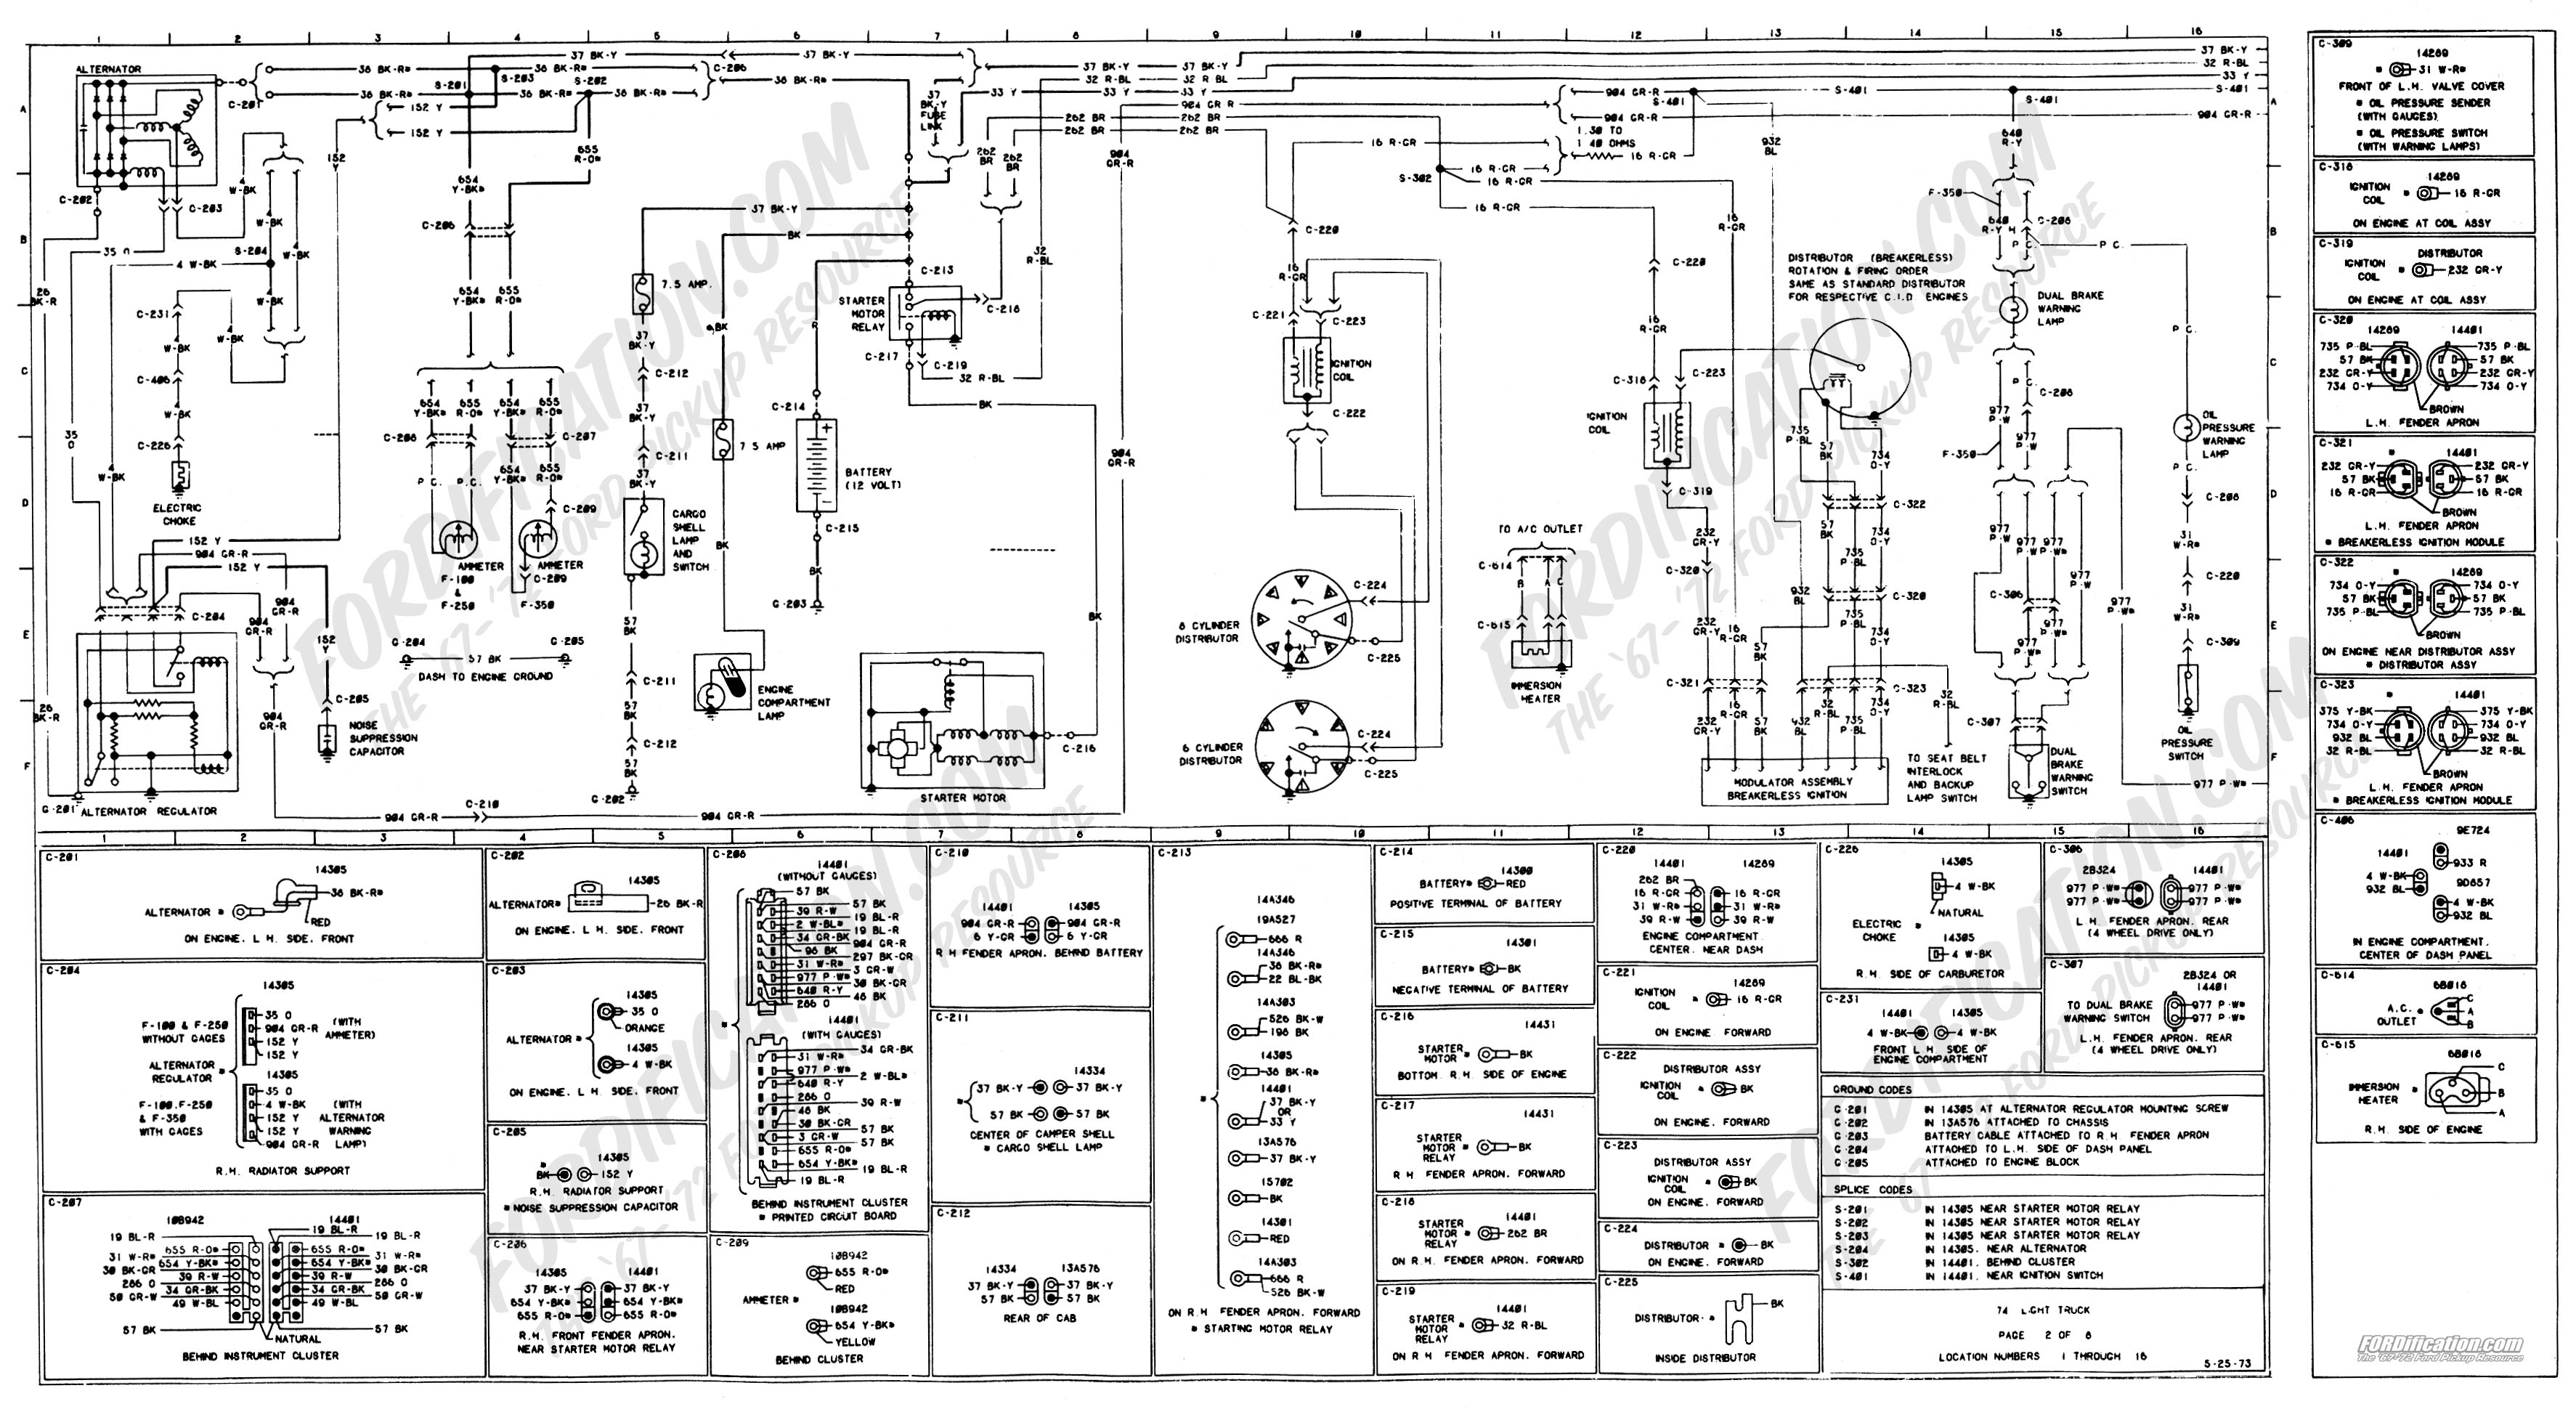 wiring_74master_2of8?resize=665%2C367 diagrams 27661688 sterling truck wiring diagrams 2001 sterling sterling dump truck wiring diagrams at n-0.co